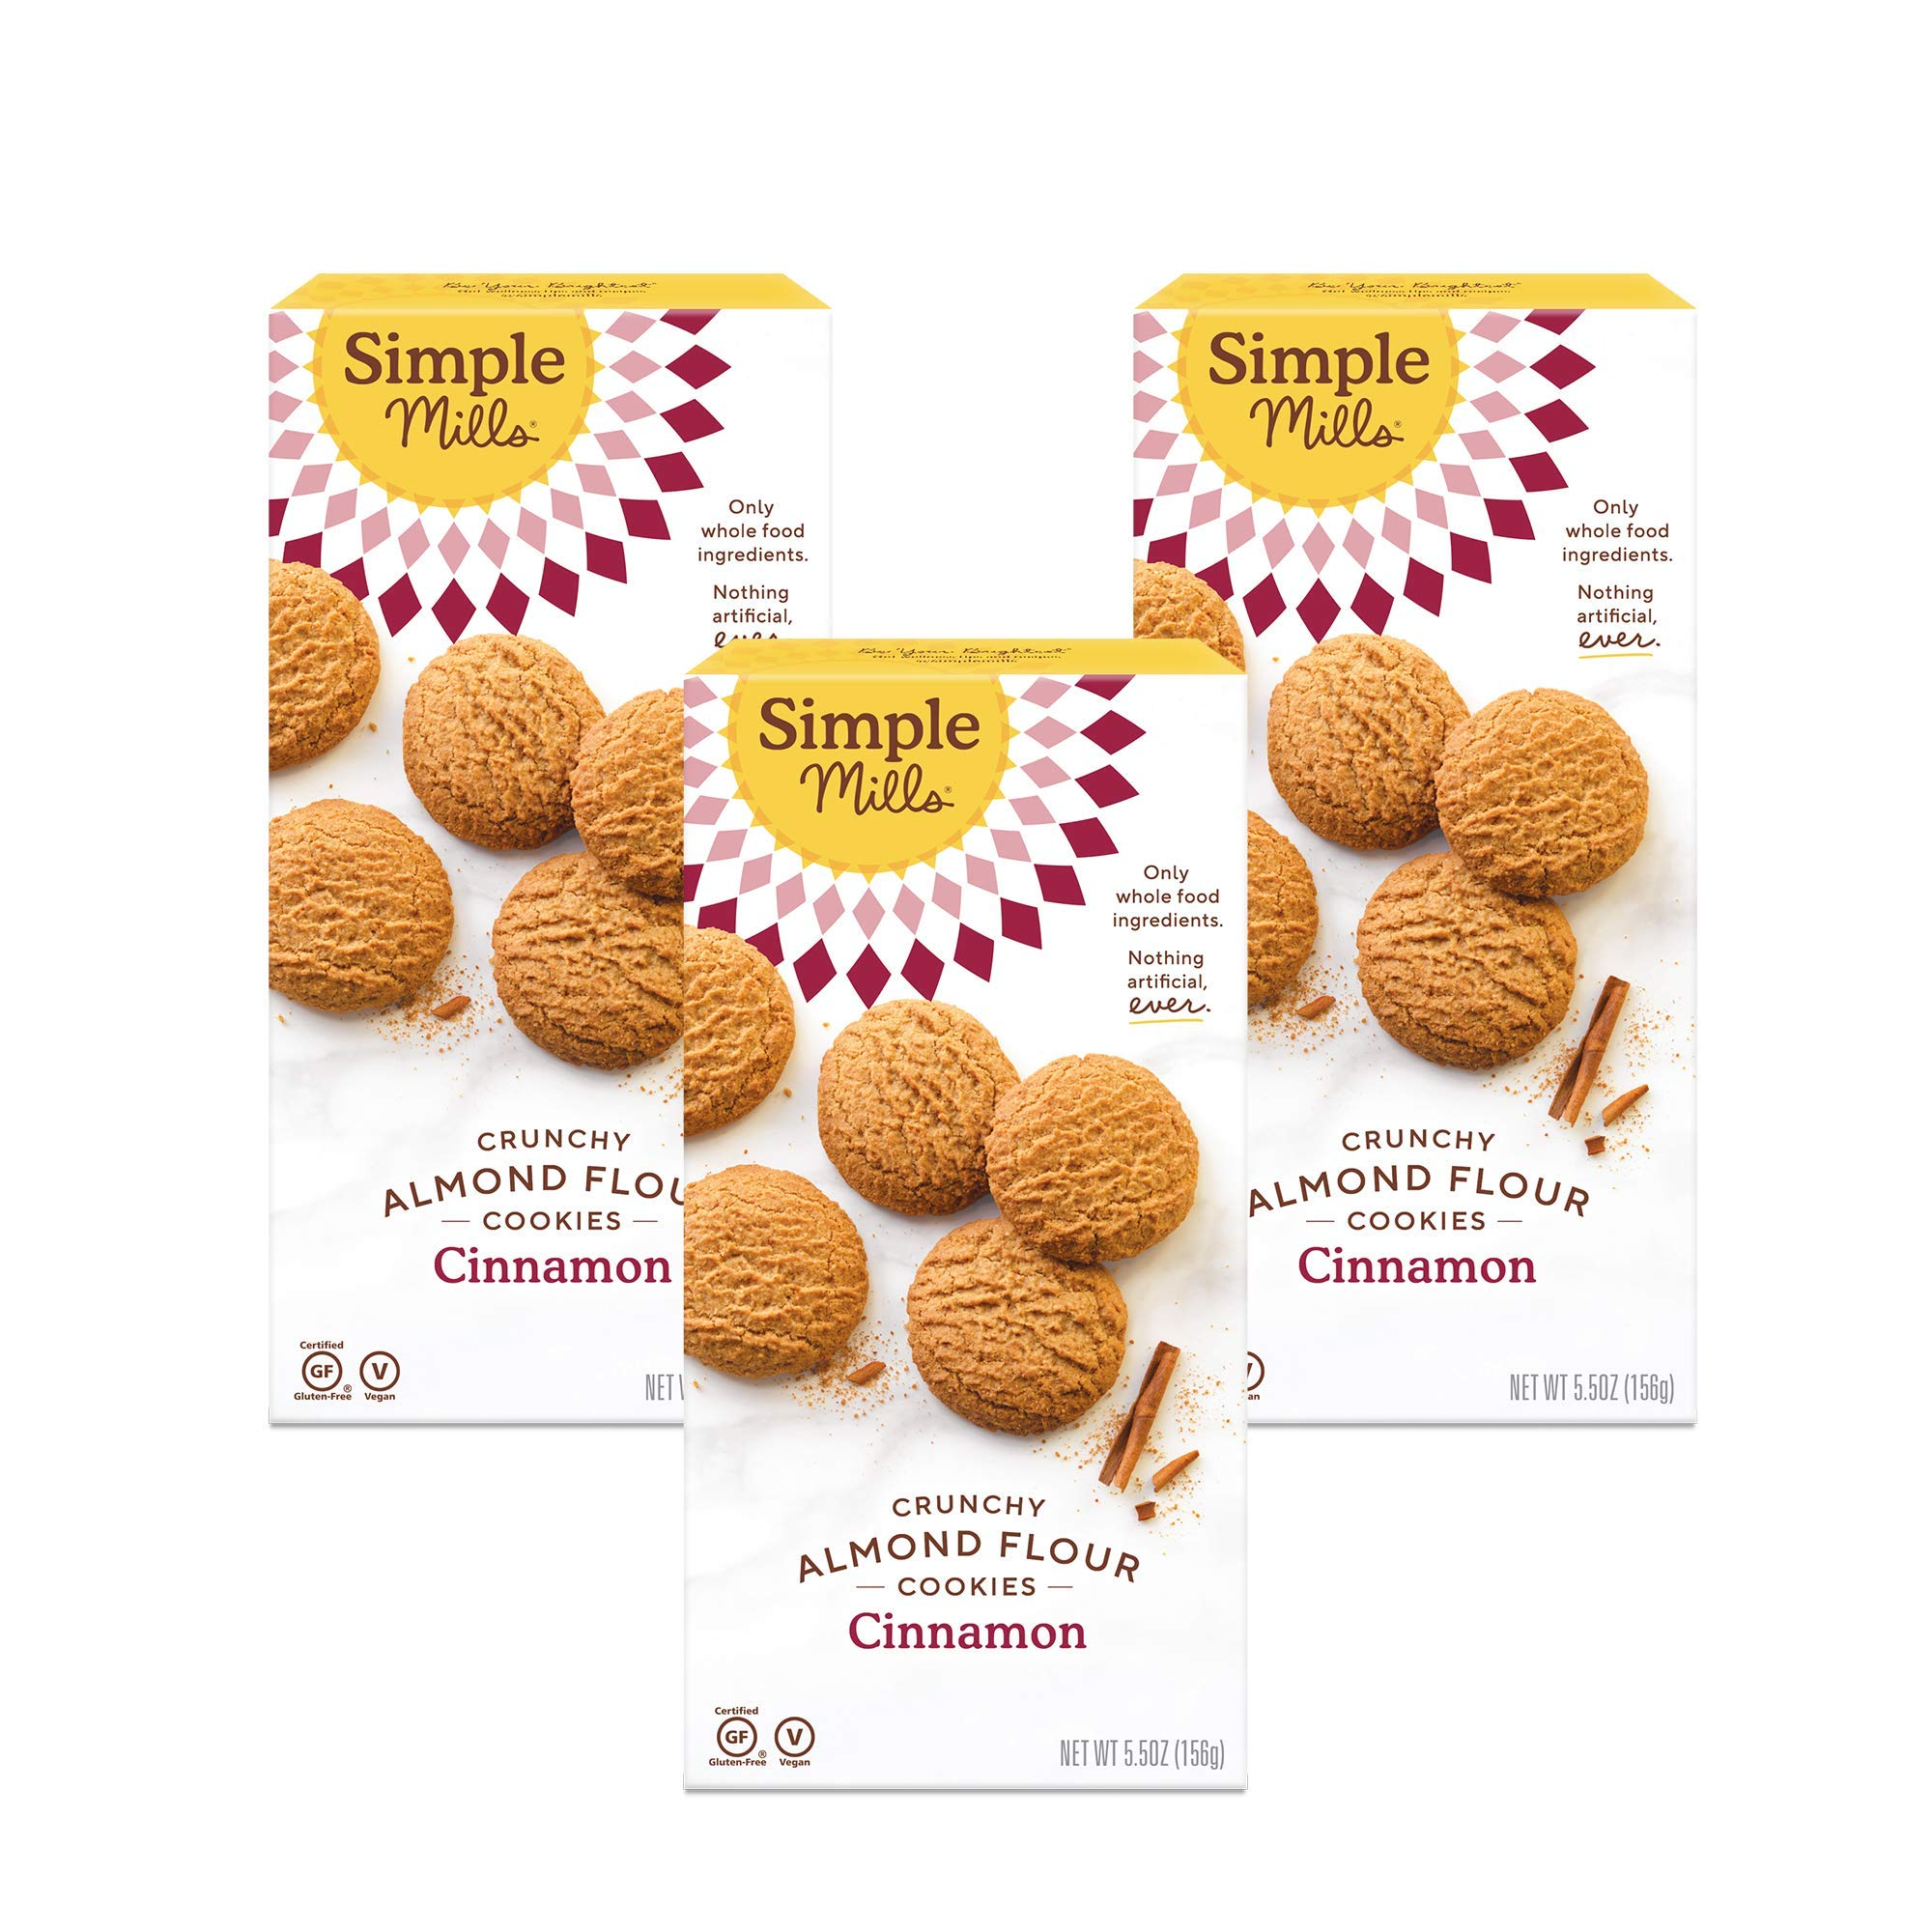 Simple Mills Almond Flour Cinnamon Cookies, Gluten Free and Delicious Crunchy Cookies, Organic Coconut Oil, Better for you Snacks, Made with whole foods, 3 Count, (Packaging May Vary)